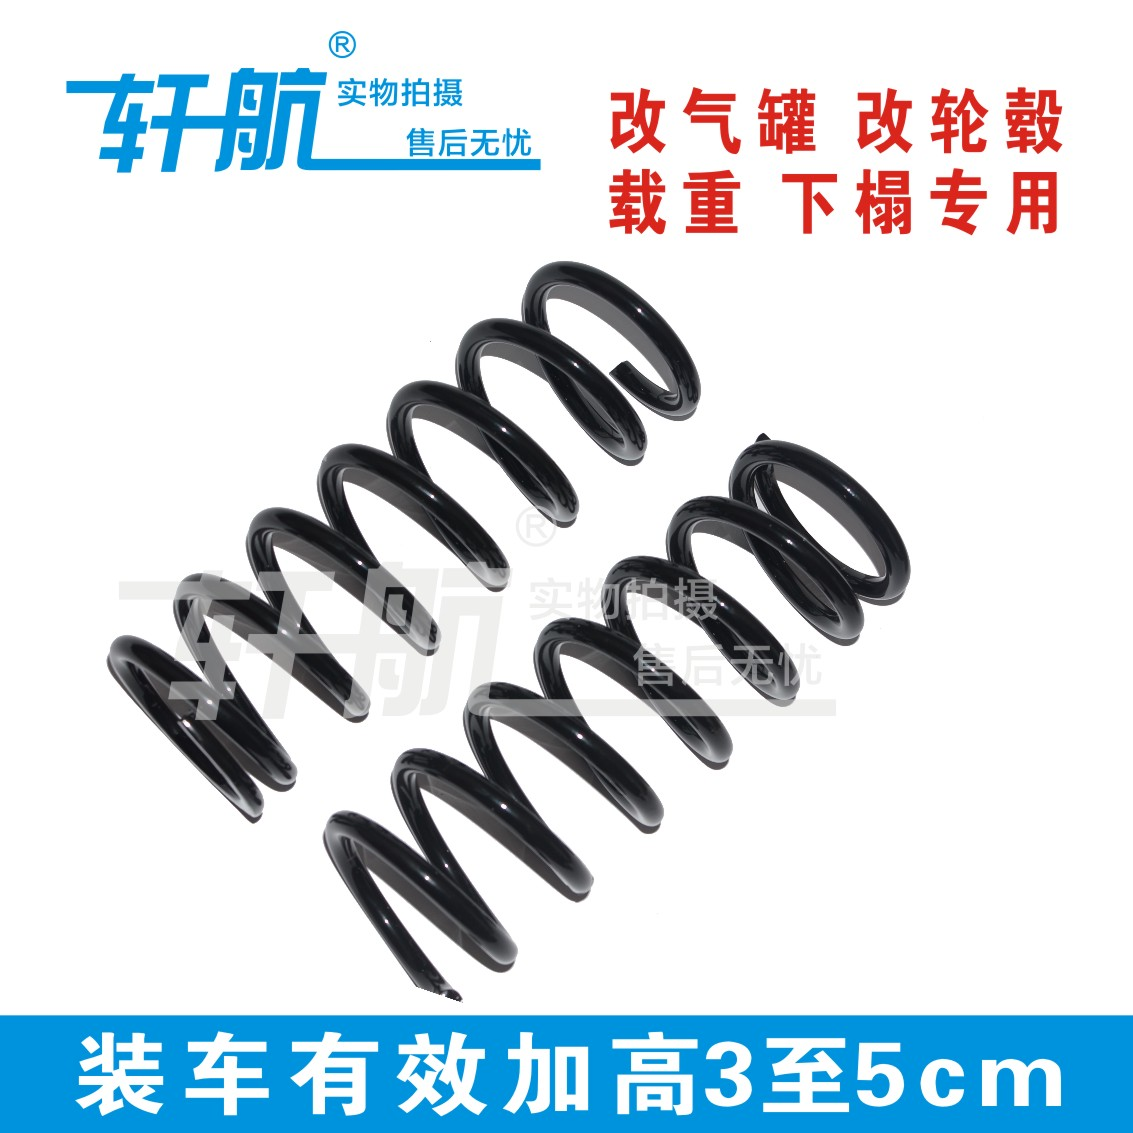 Xuan hang new nissan teana old teana duke trail of old and new sunshine modified shock absorbers heightening bold spring